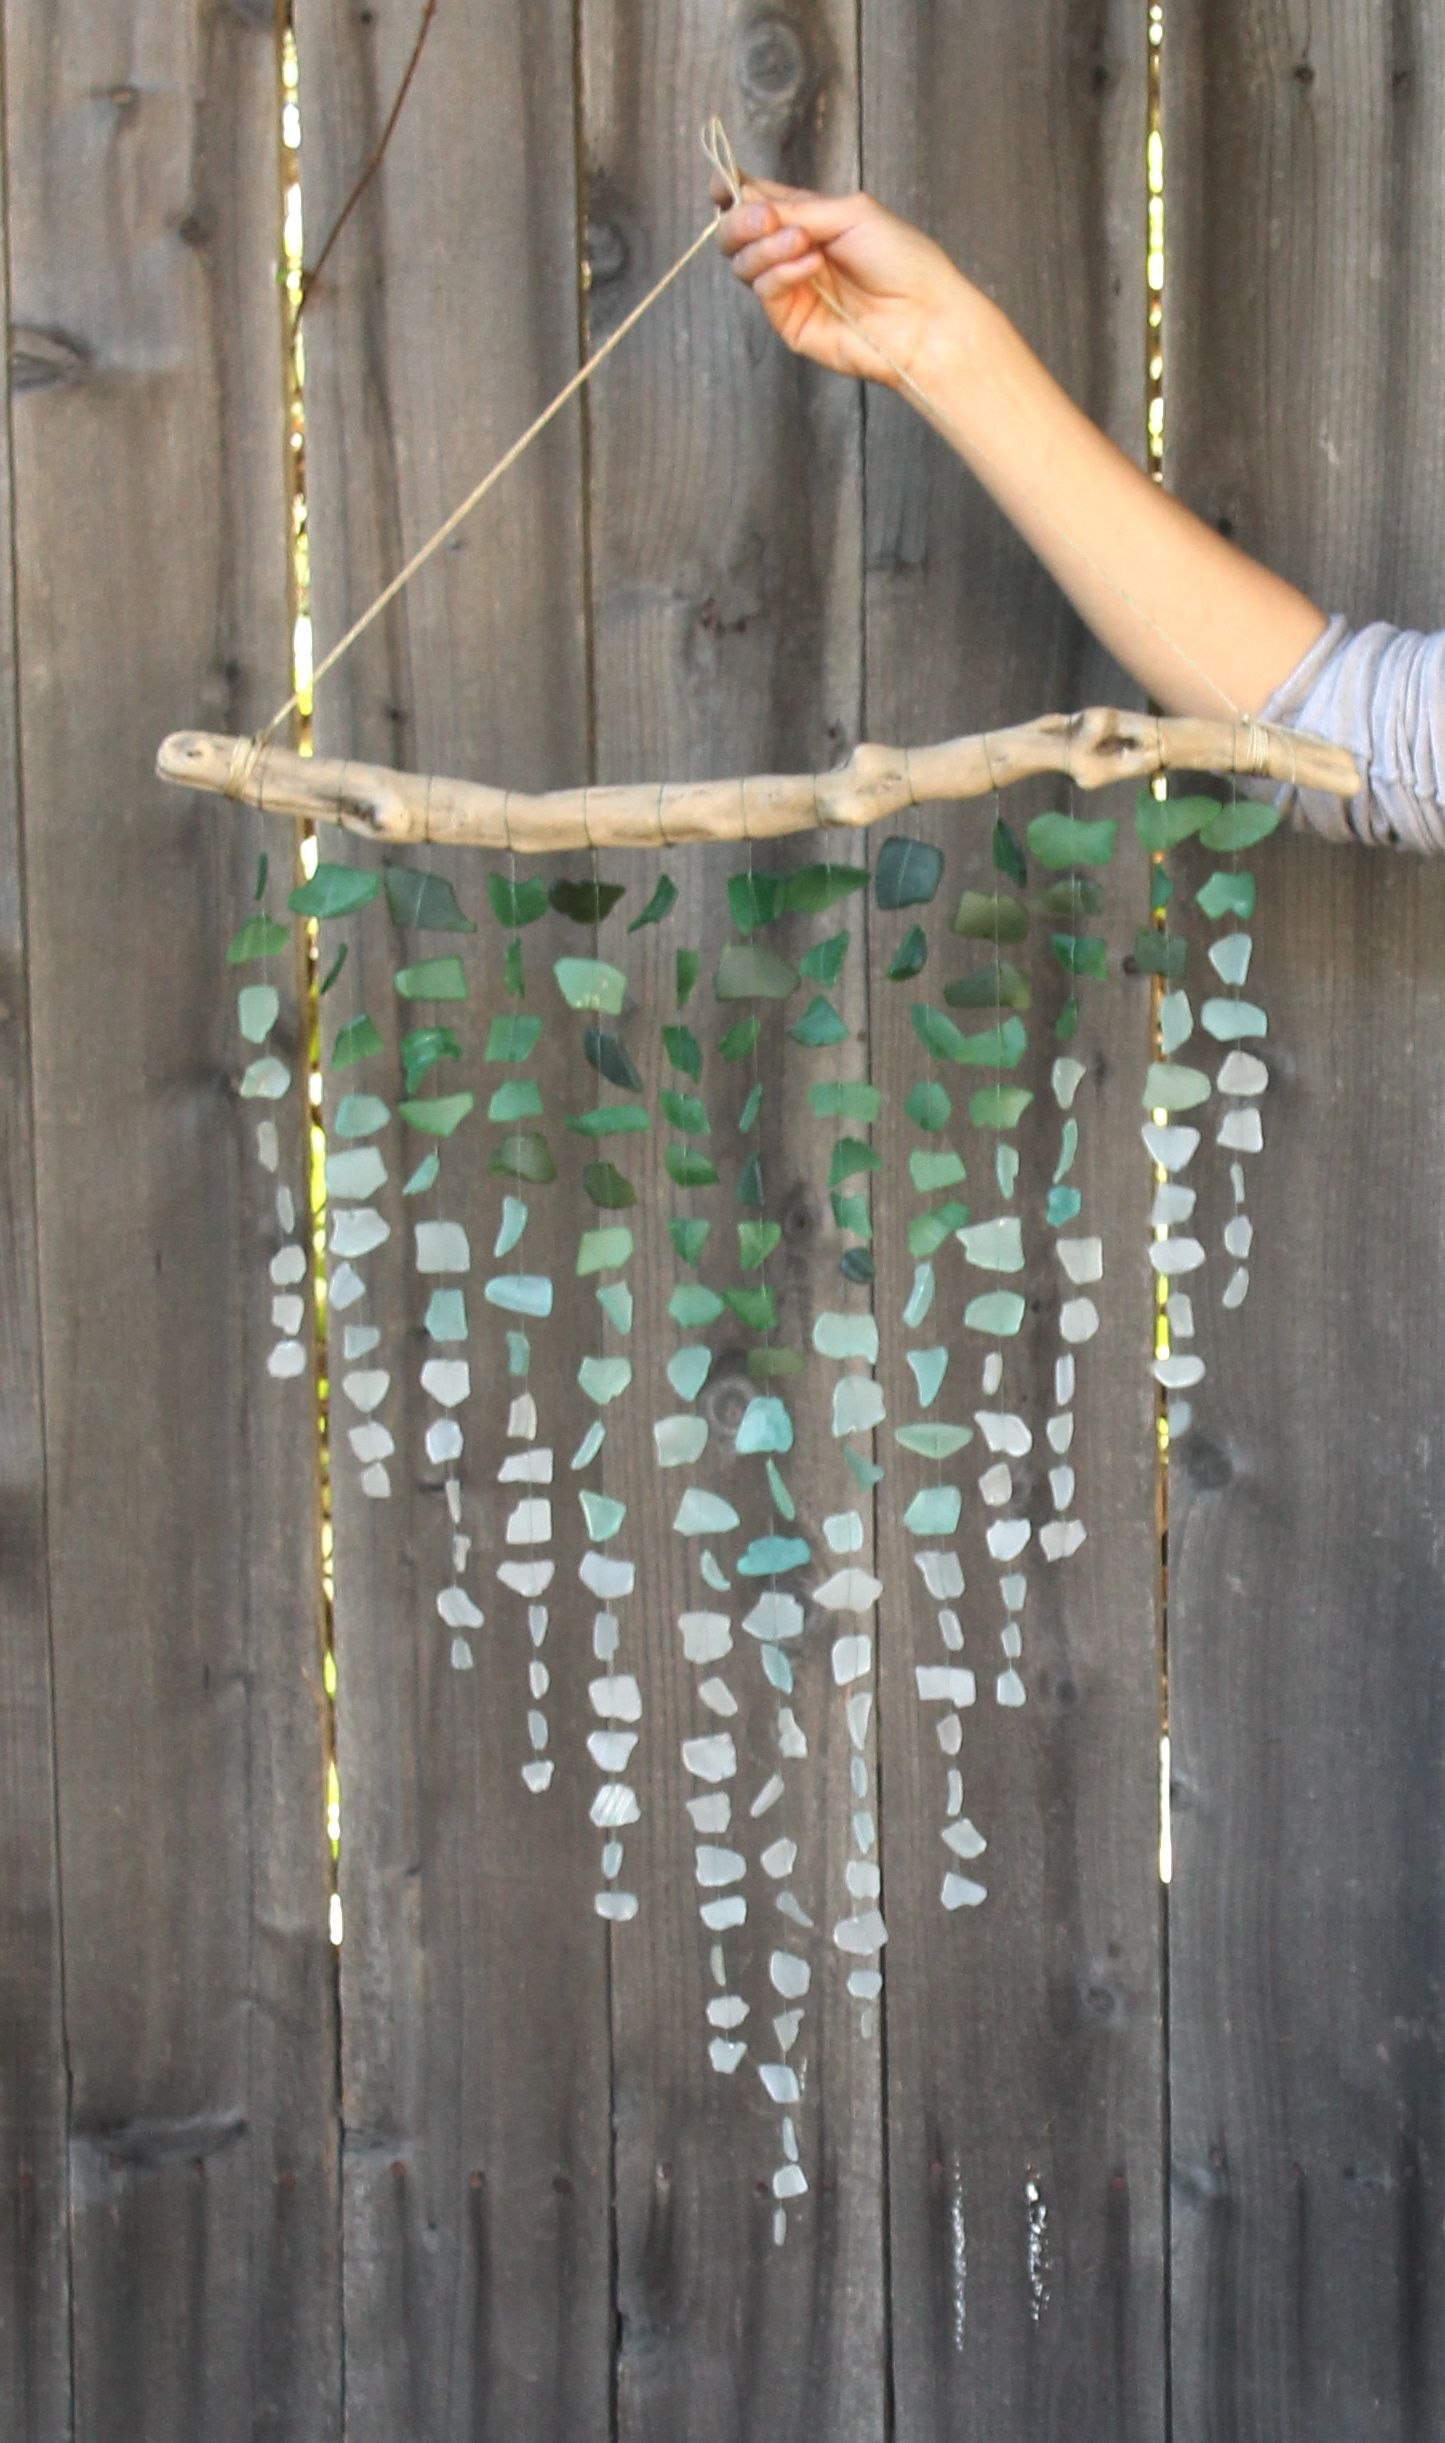 Sea Glass Mobile Google Search Shell Sea Glass Pinterest Glass Searching And Beach Crafts